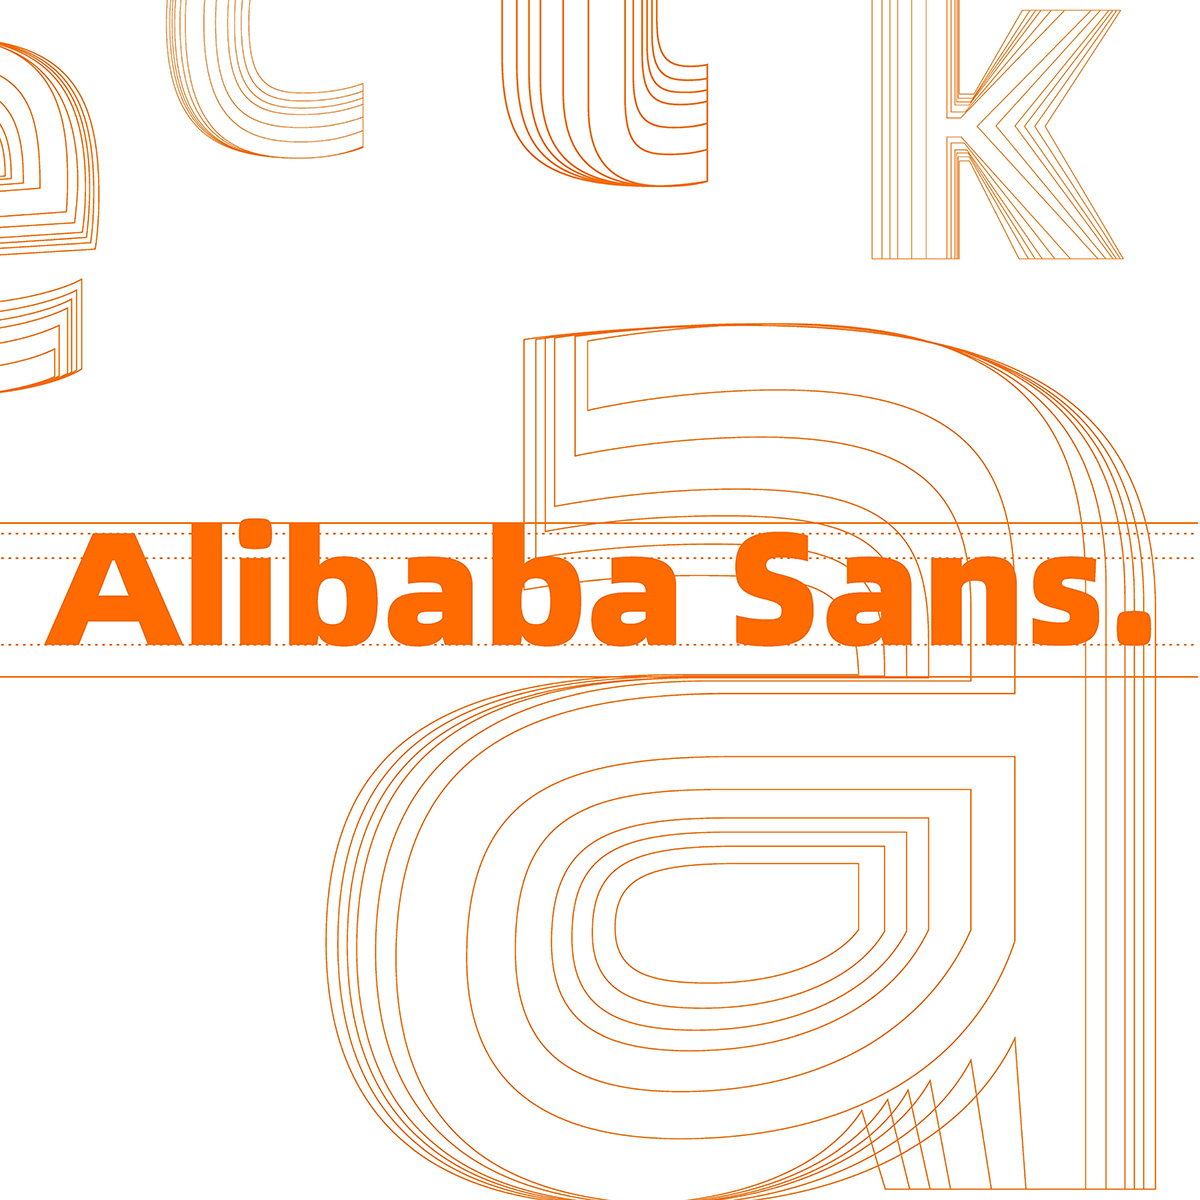 Monotype Develops Bespoke Typeface for Alibaba